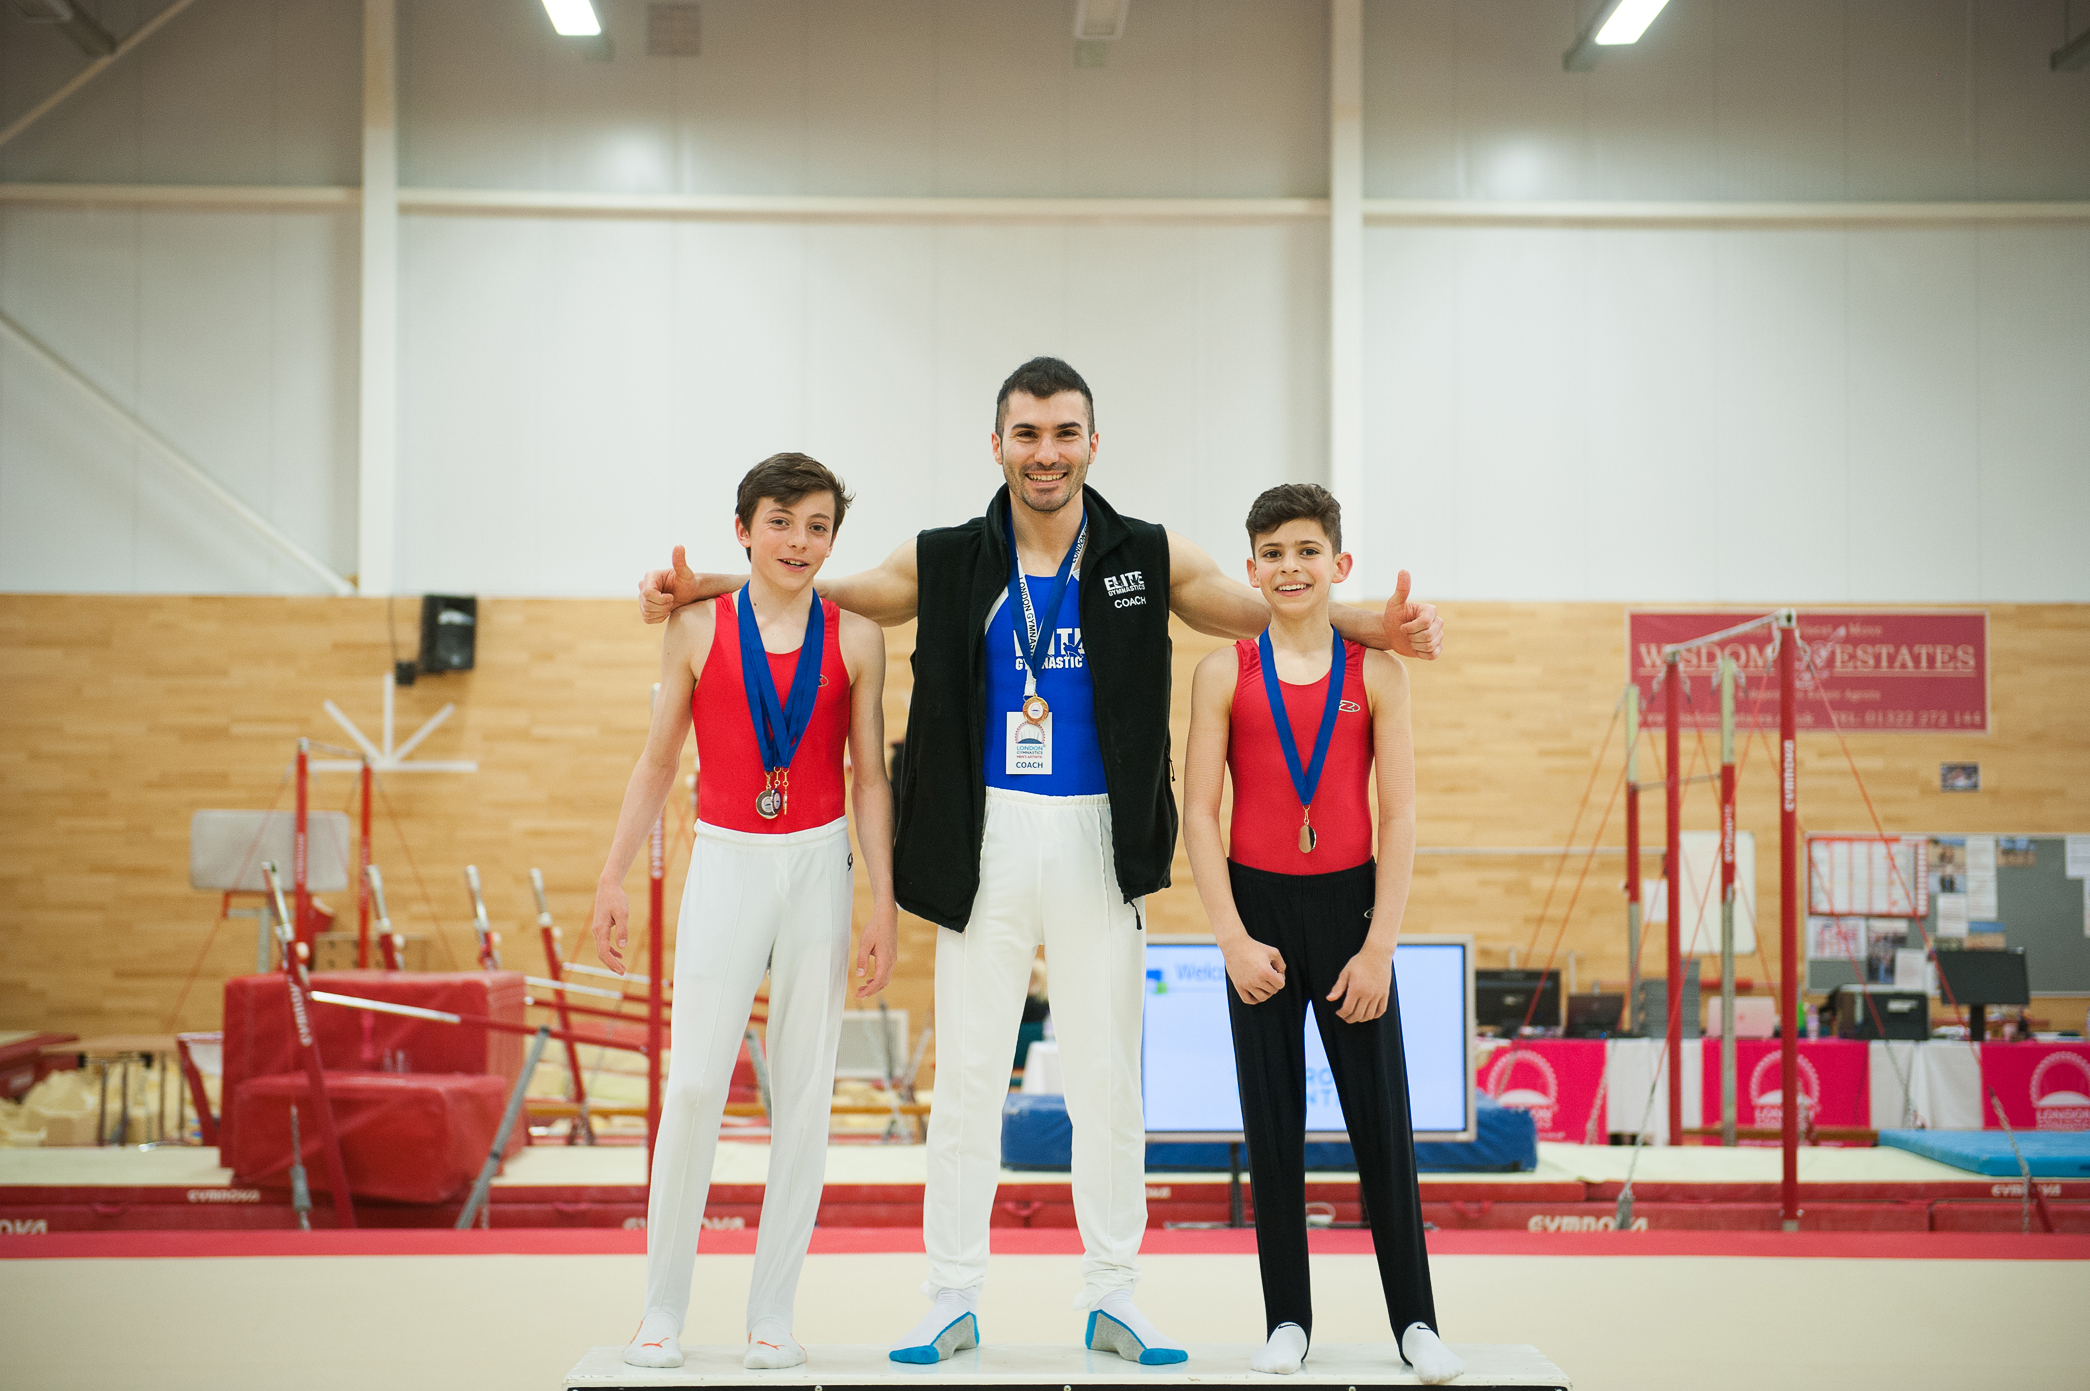 coach Stef and his gymnasts from the Elite G.A. after the event